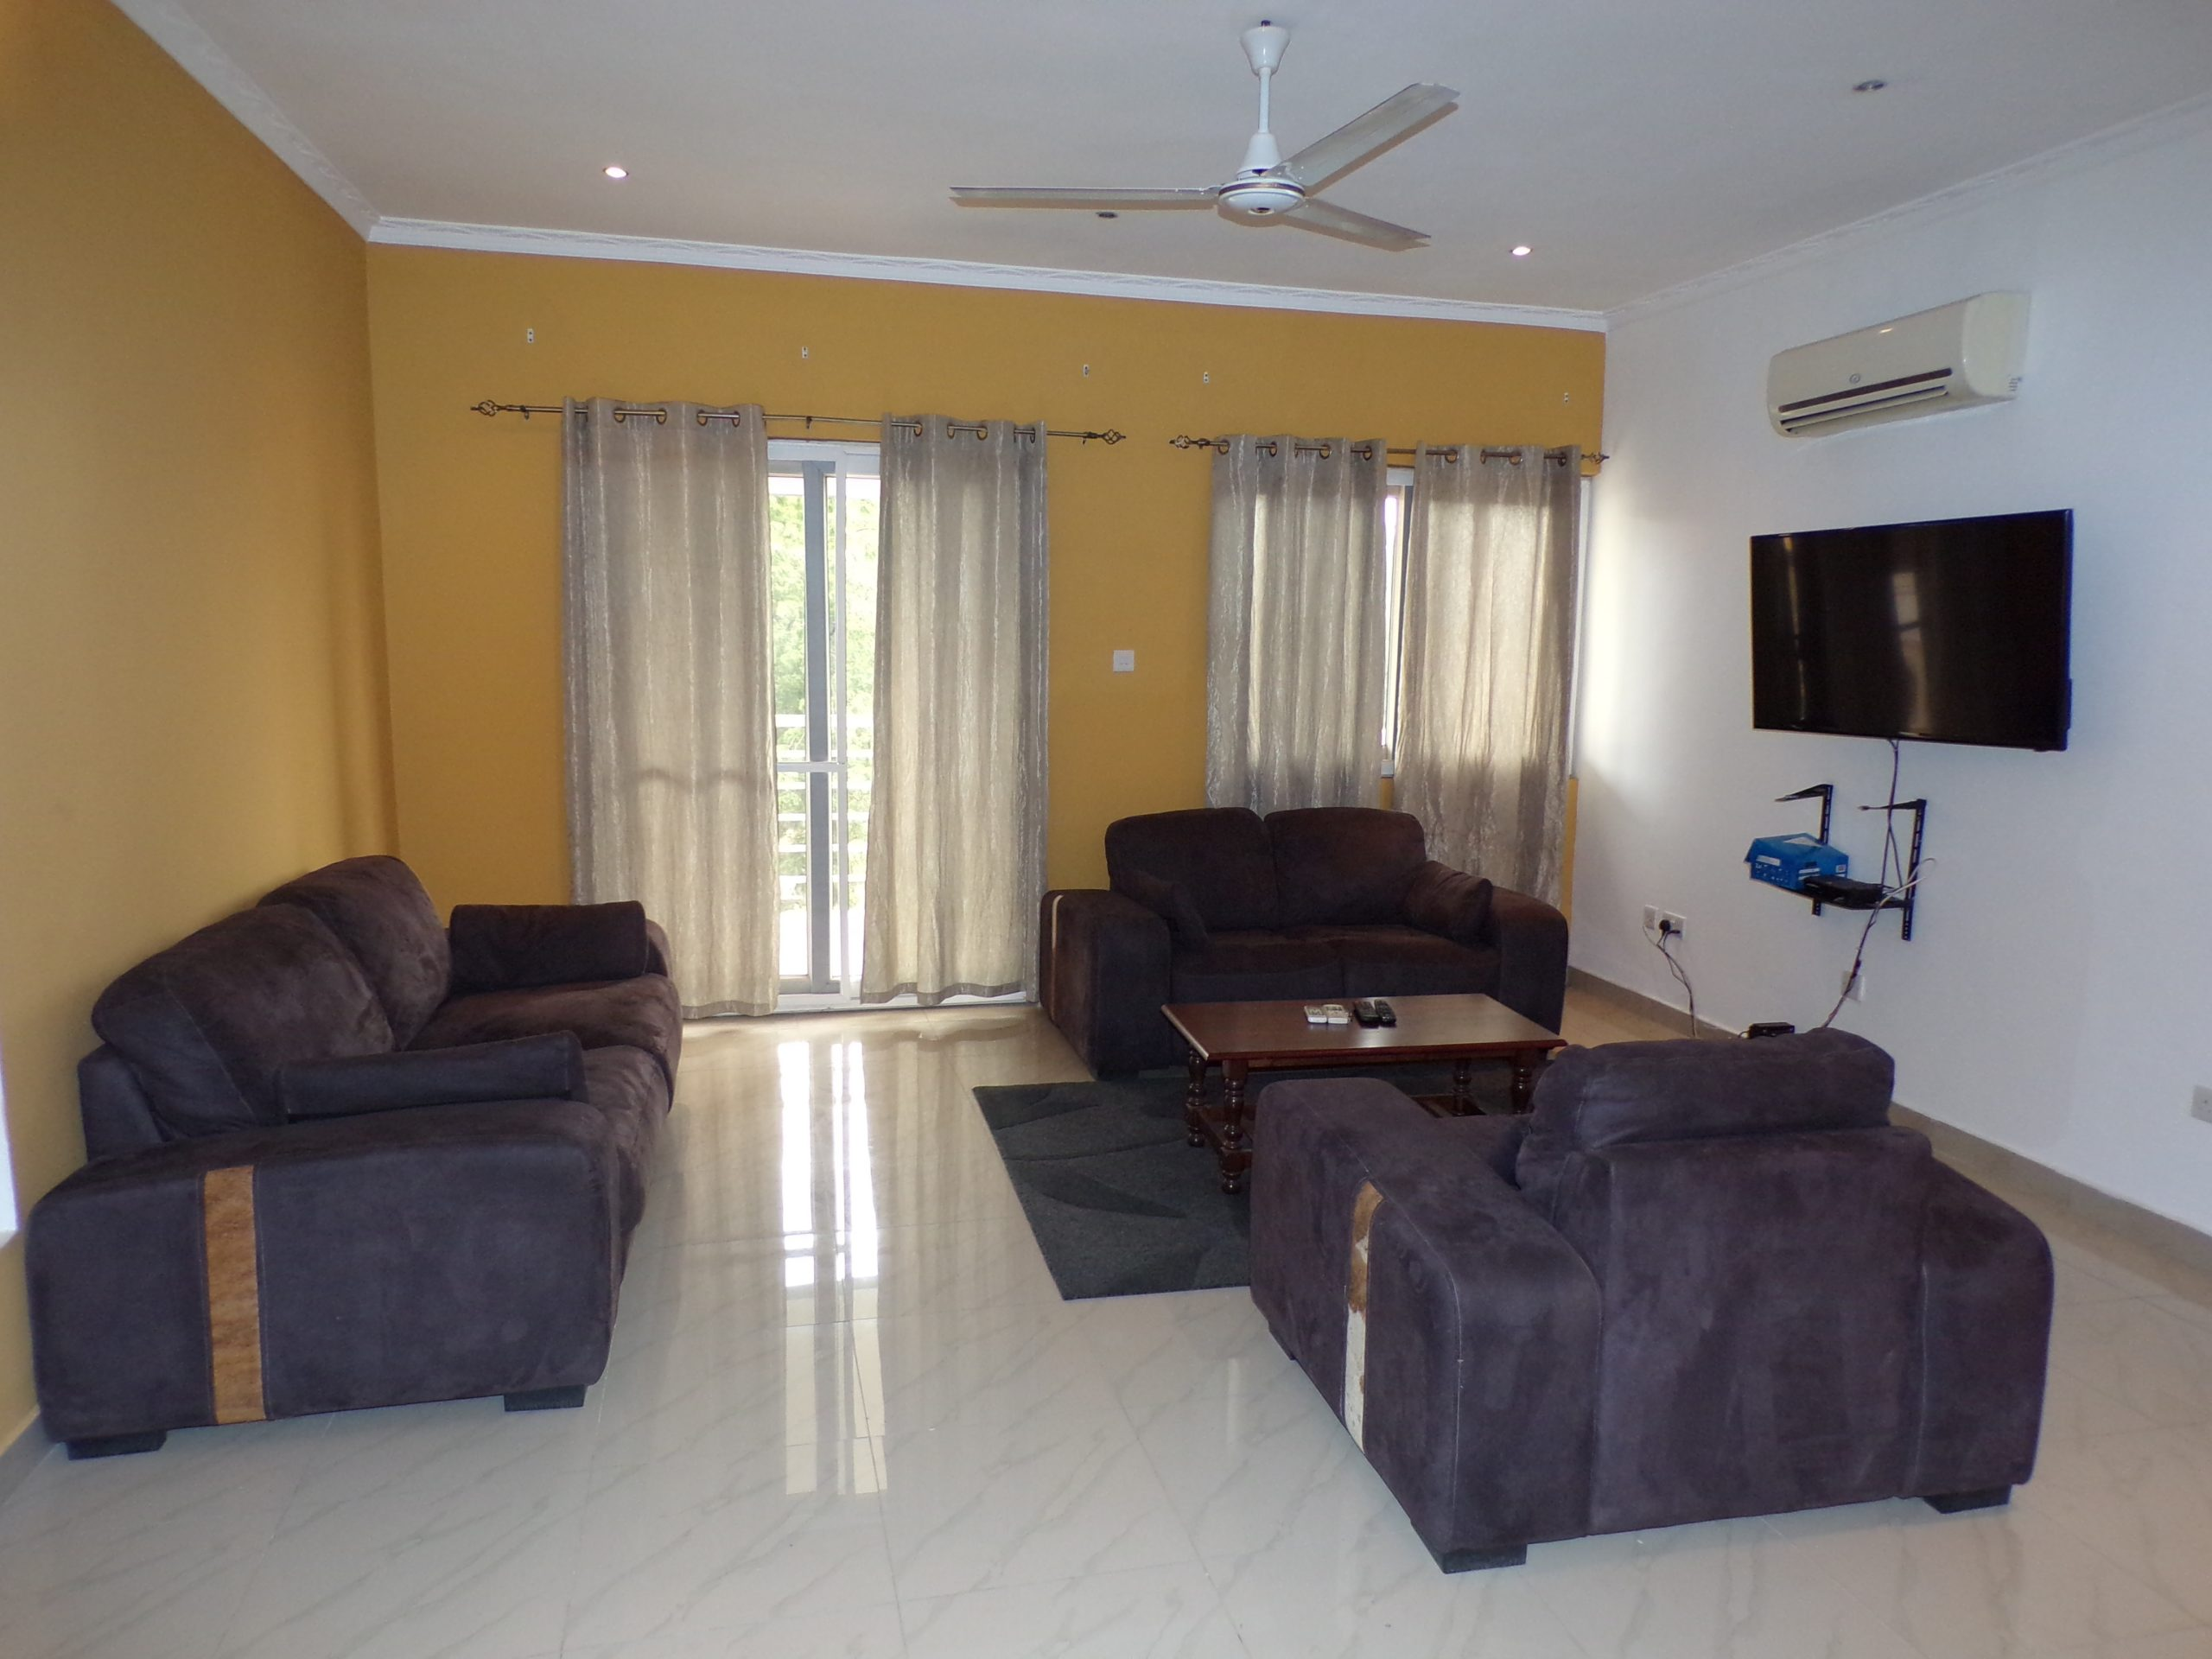 2 BEDROOM UNFURNISHED APARTMENT FOR RENT AT CANTONMENTS